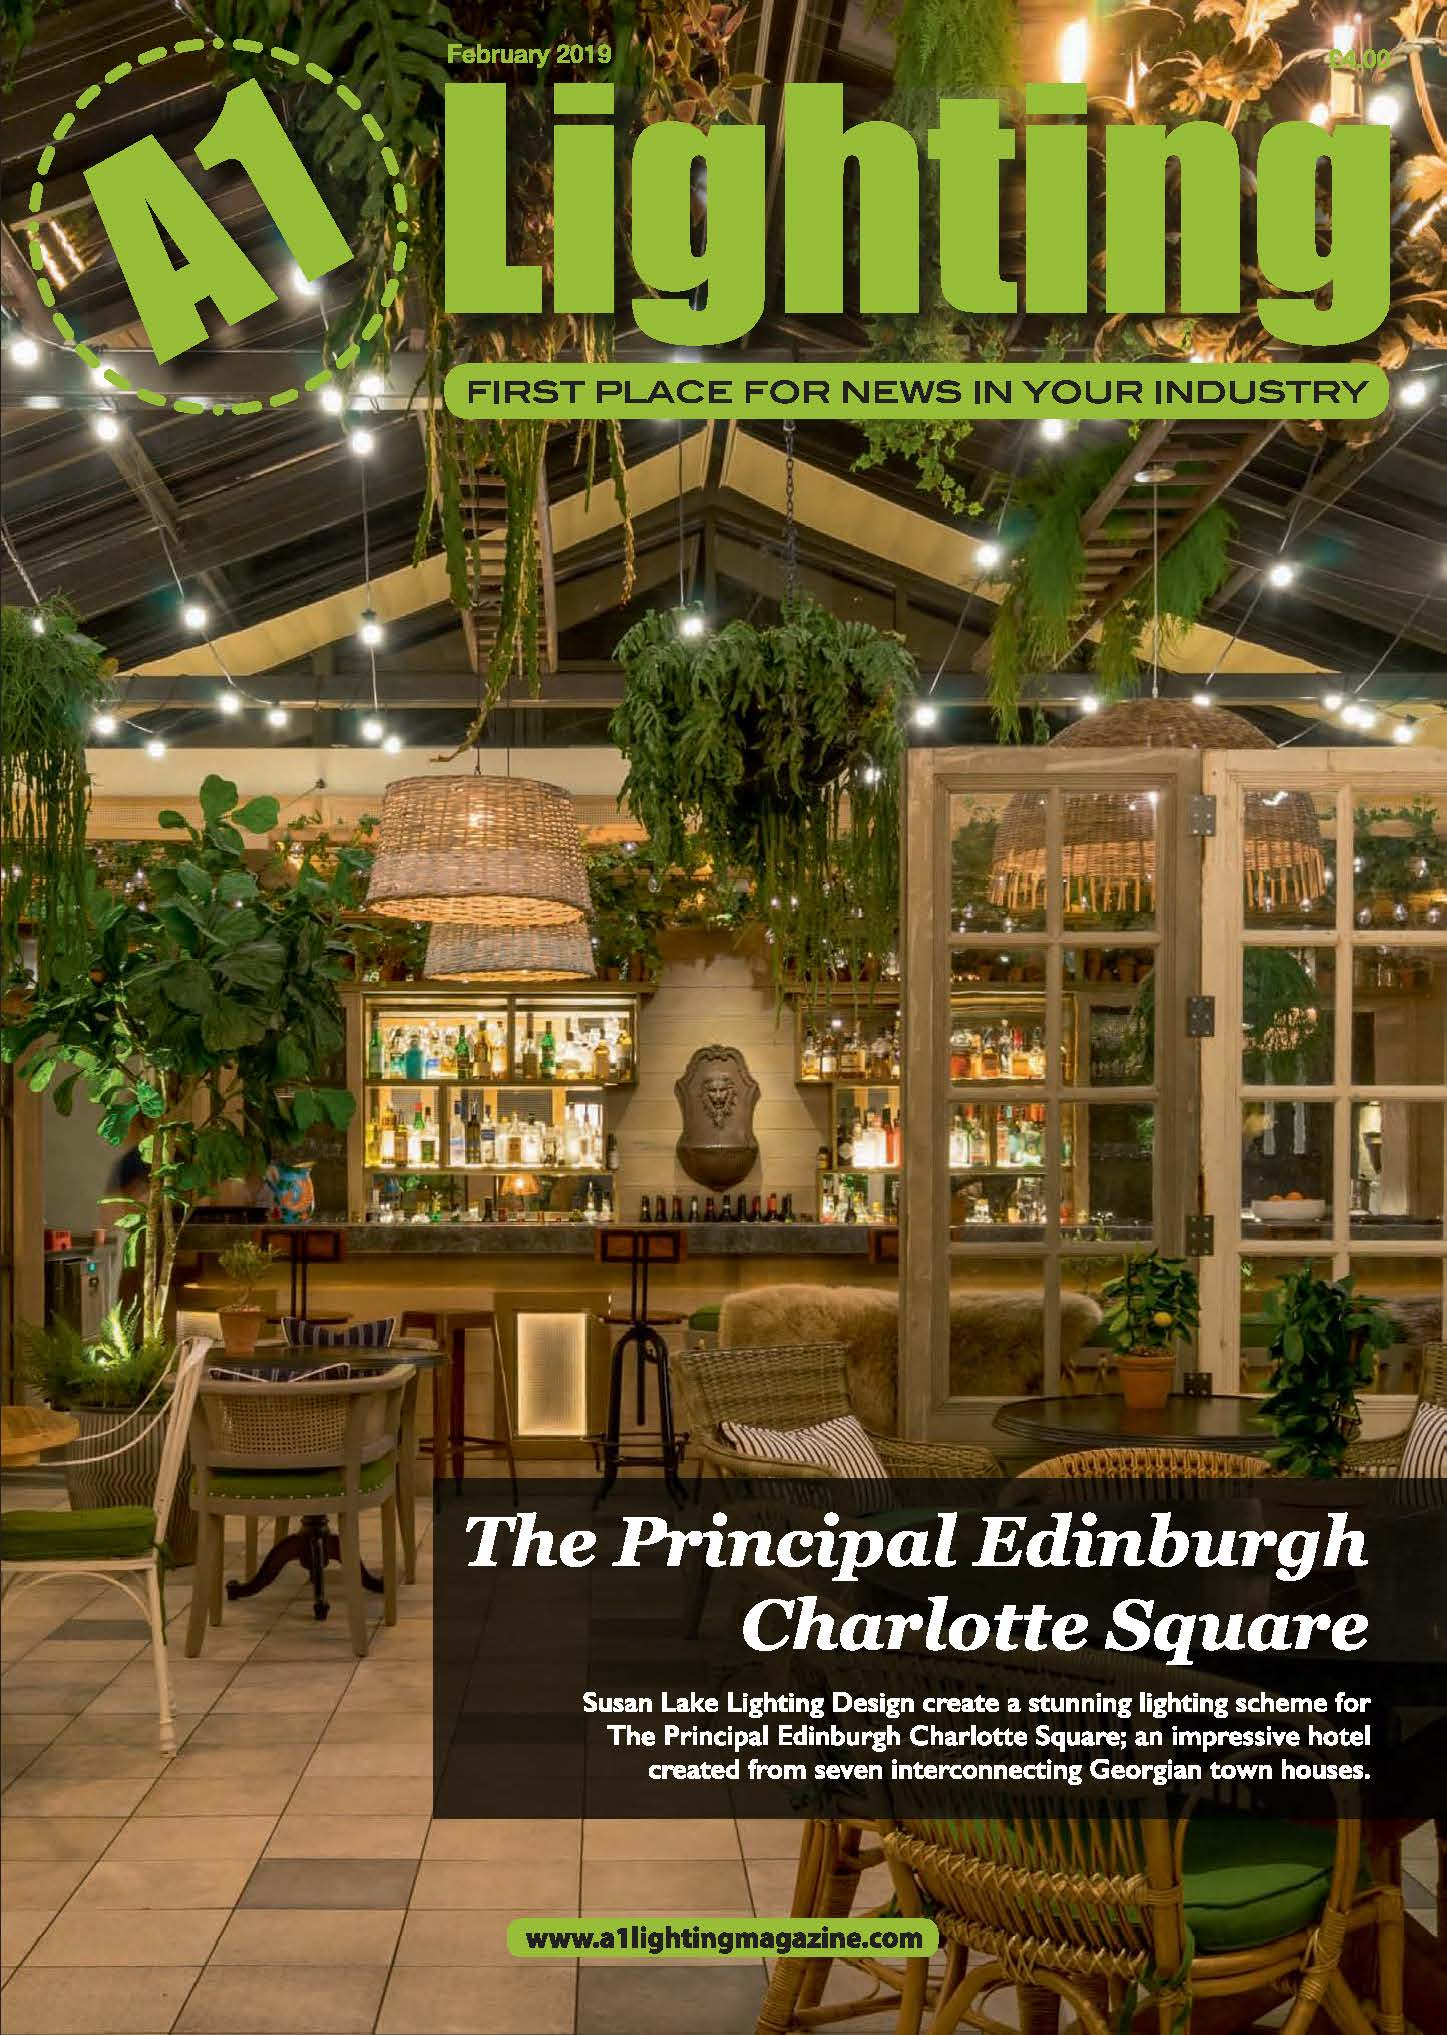 A1 LIGHTING MAGAZINE FEBRUARY '19THE PRINCIPAL EDINBURGH, CHARLOTTE SQUARE -